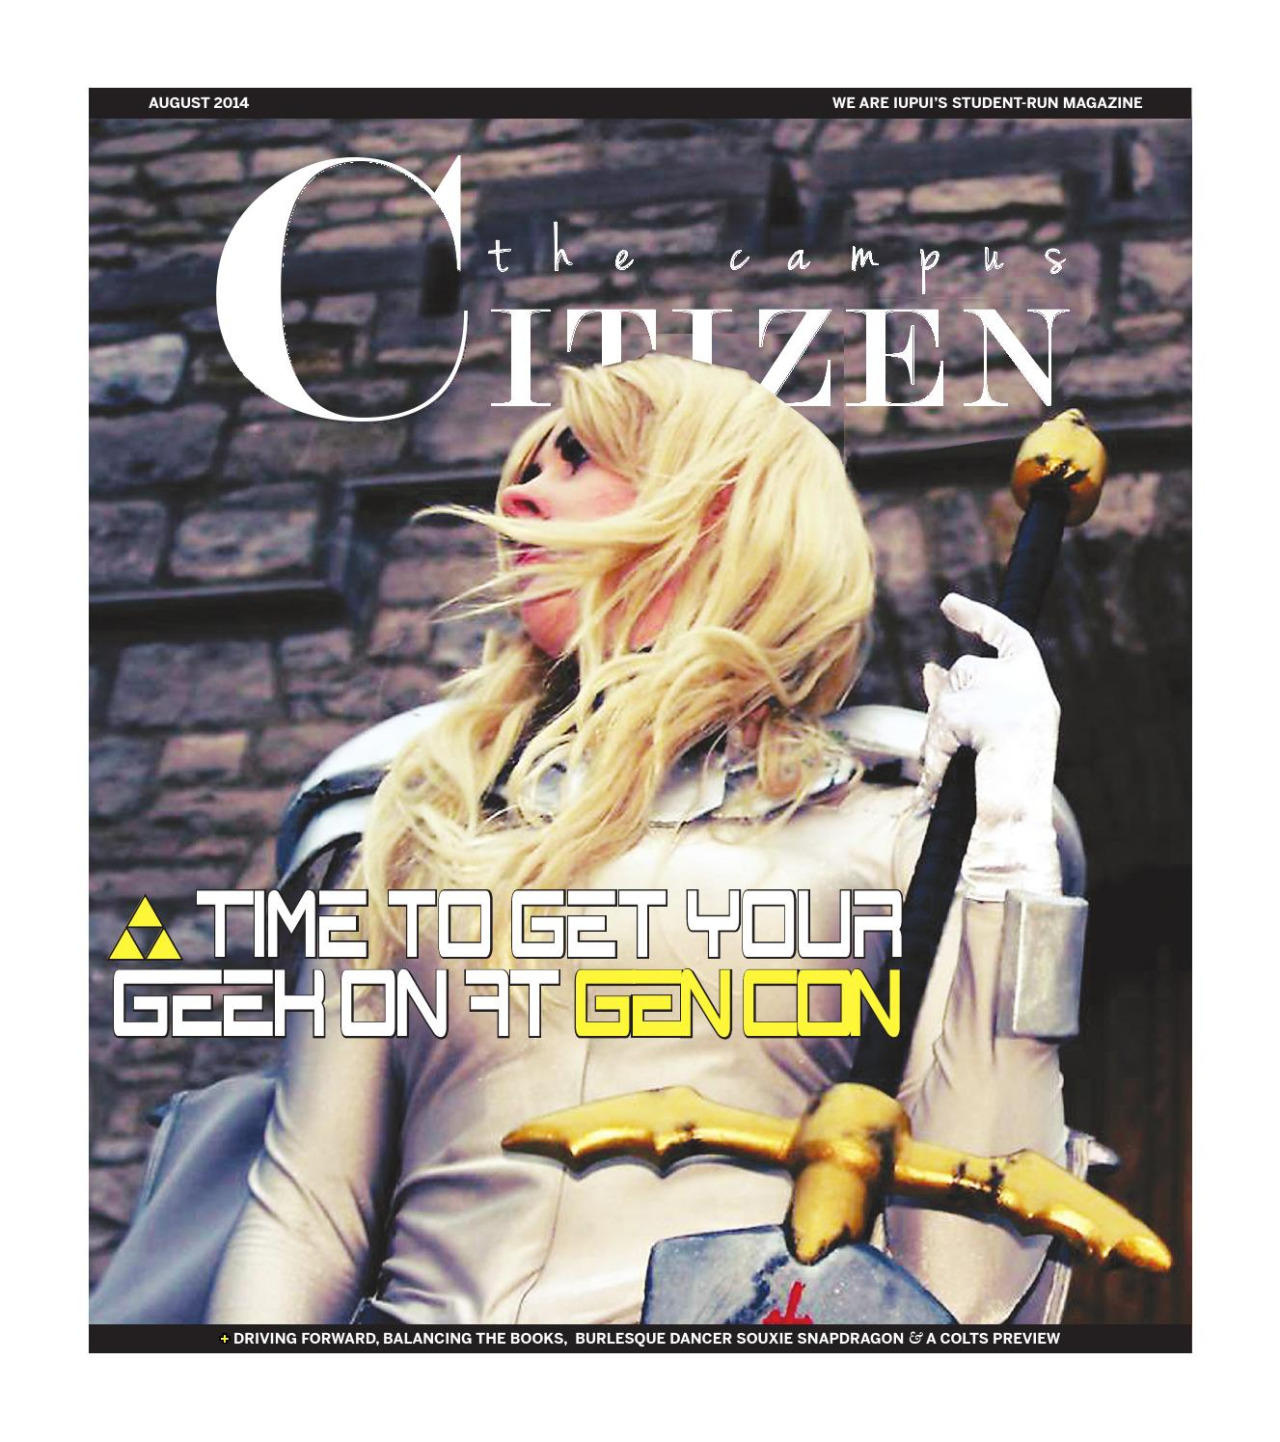 FIRST LOOK:THIS MONTH'S ISSUE OF THE CAMPUS CITIZEN IS ABOUT TO HIT NEWSSTANDS ACROSS CAMPUS, BUT WE DECIDED TO SHARE IT WITH OUT INTERNET FRIENDS FIRST! WHAT'S INSIDE: The Campus Citizen 08/14 TIME TO GET YOUR GEEK ON AT GEN CON + Driving forward Balancing the books Burlesque dance Souxie Snapdragon A Colts preview & much more!